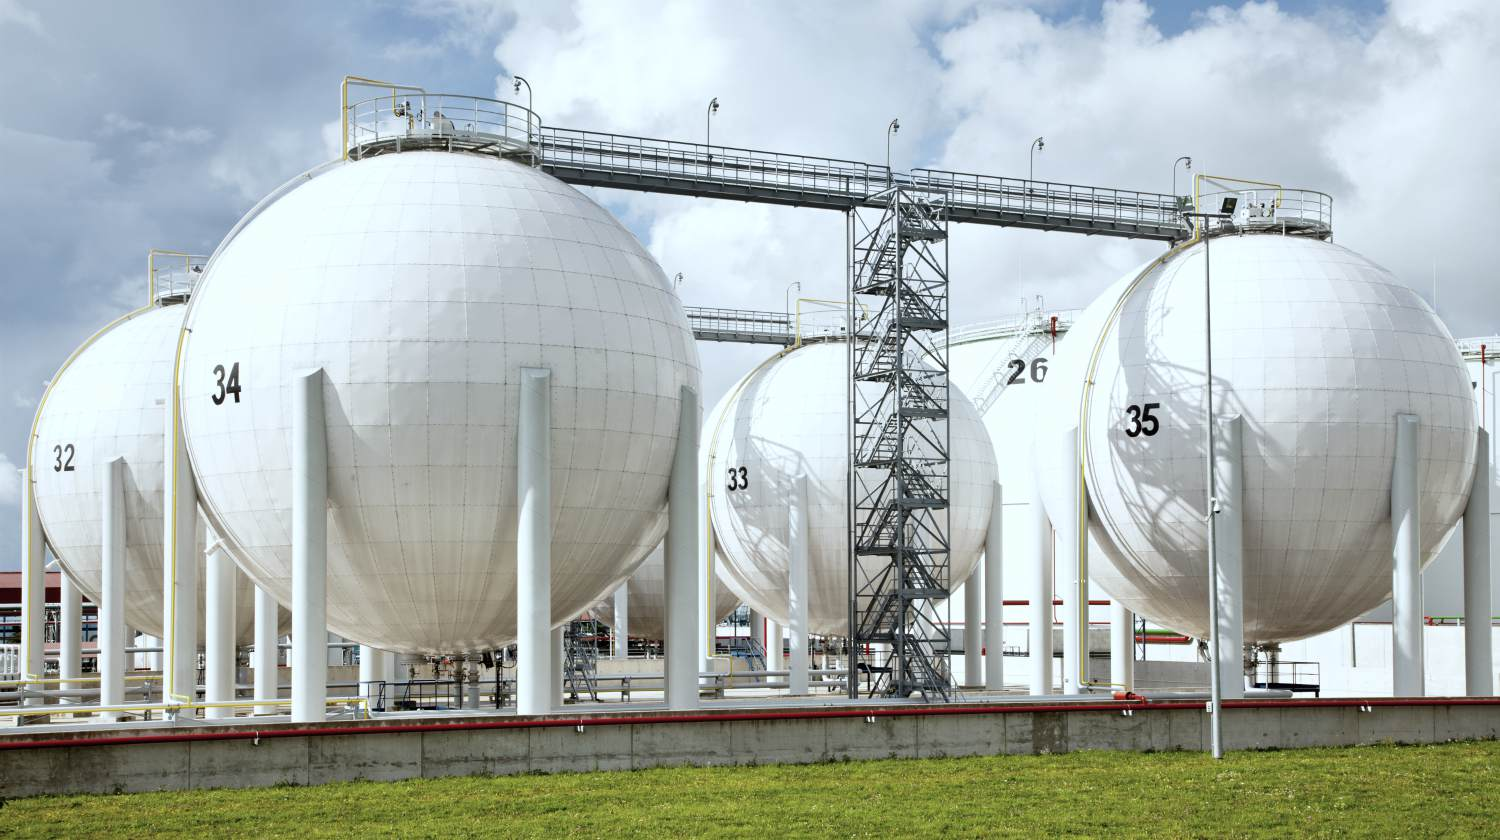 Featured | oil storage | Investing in Natural Gas Stocks Inside Your IRA | buying natural gas stocks